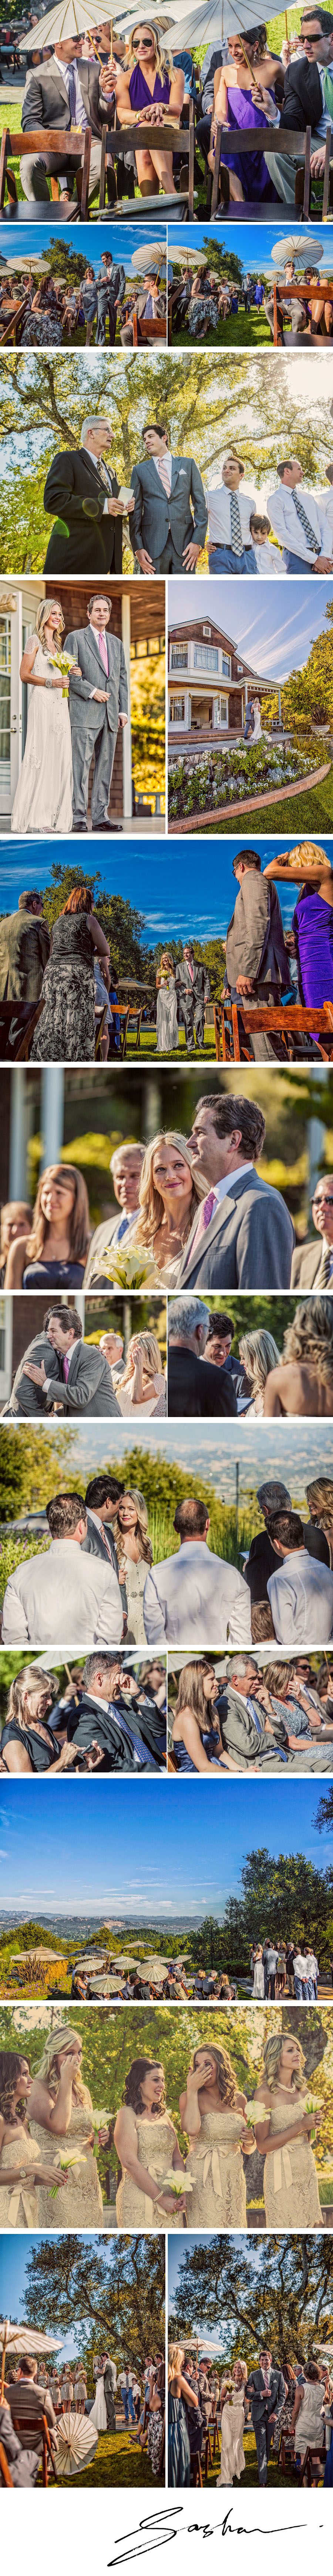 healdsburg estate wedding